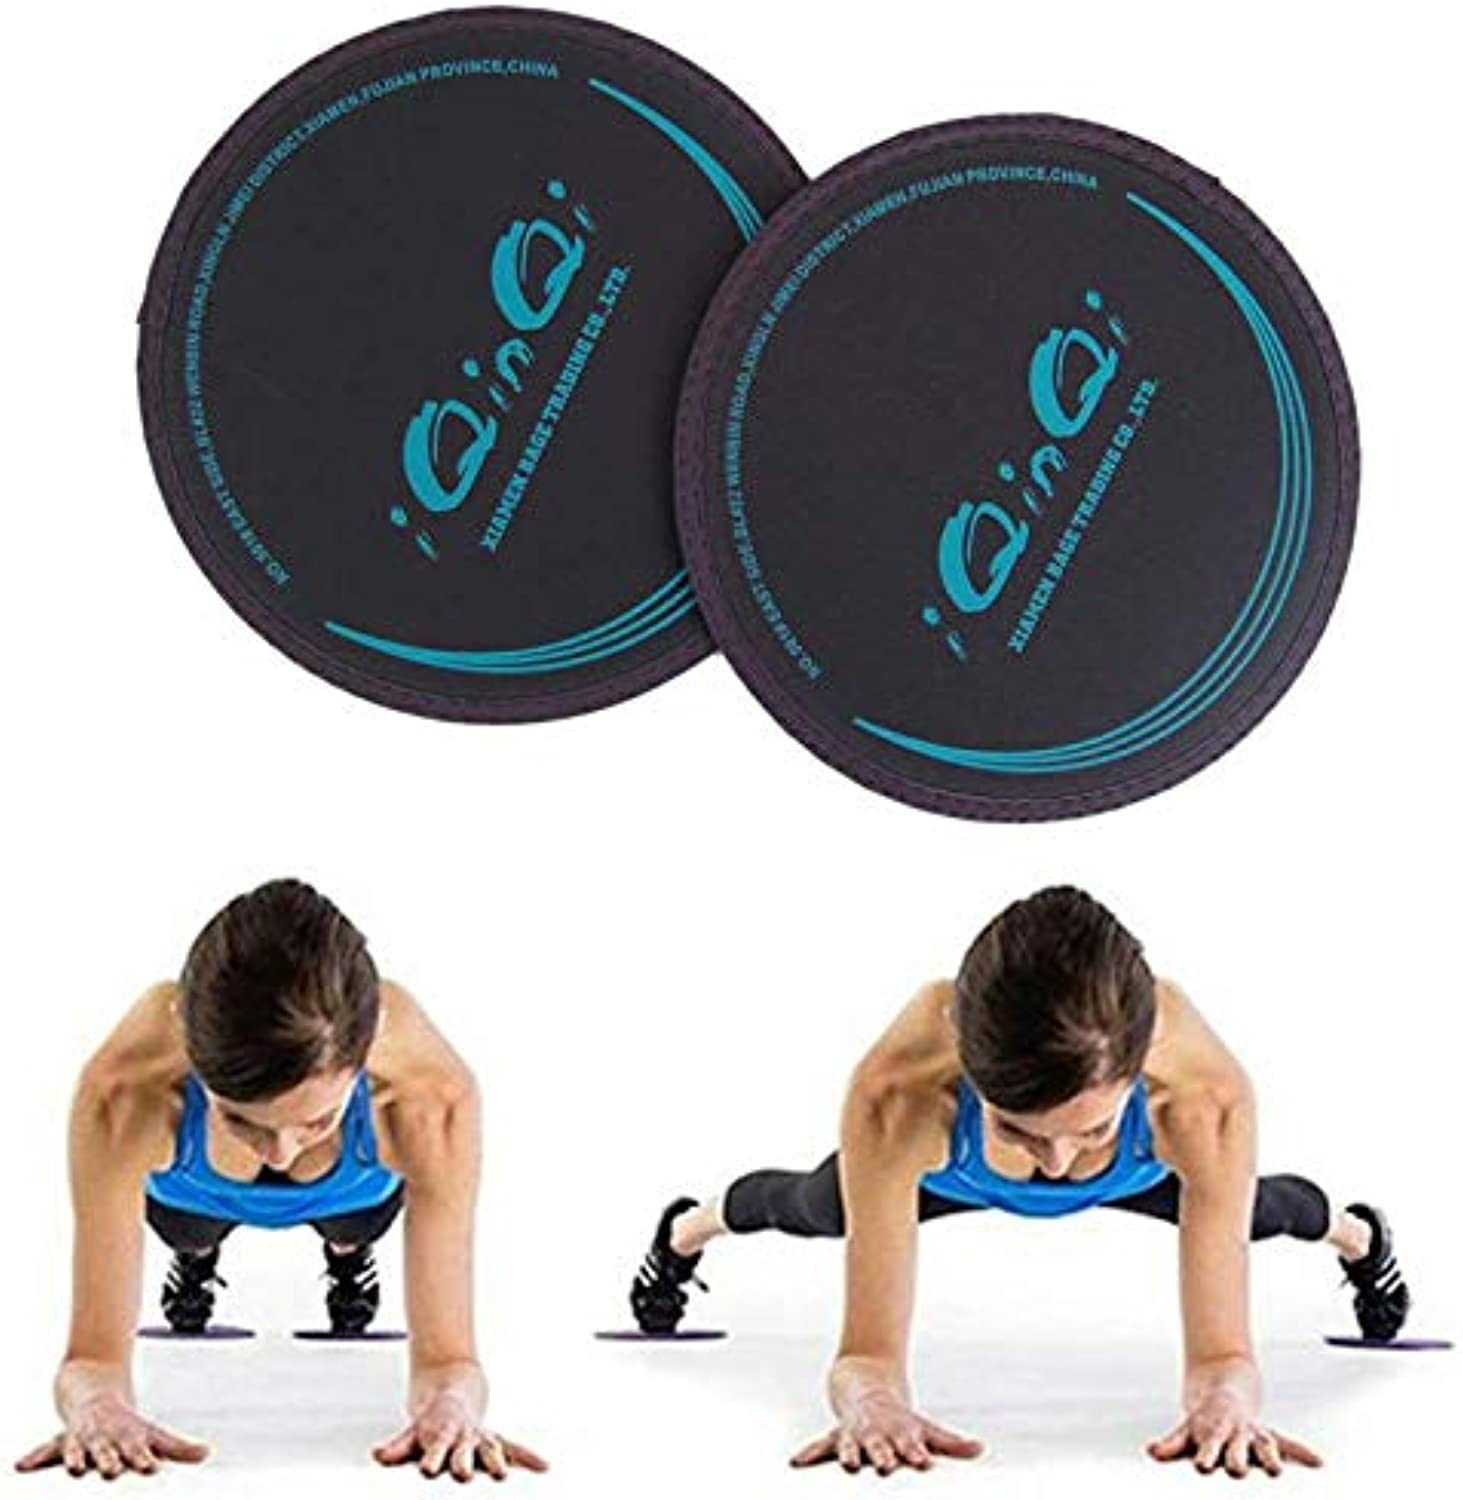 IQinQi Exercise Gliding Discs 2 Pcs Core Sliders Use on Hardwood Floors Abdominal Total Body Workout Equipment for Gym, Home, Travel